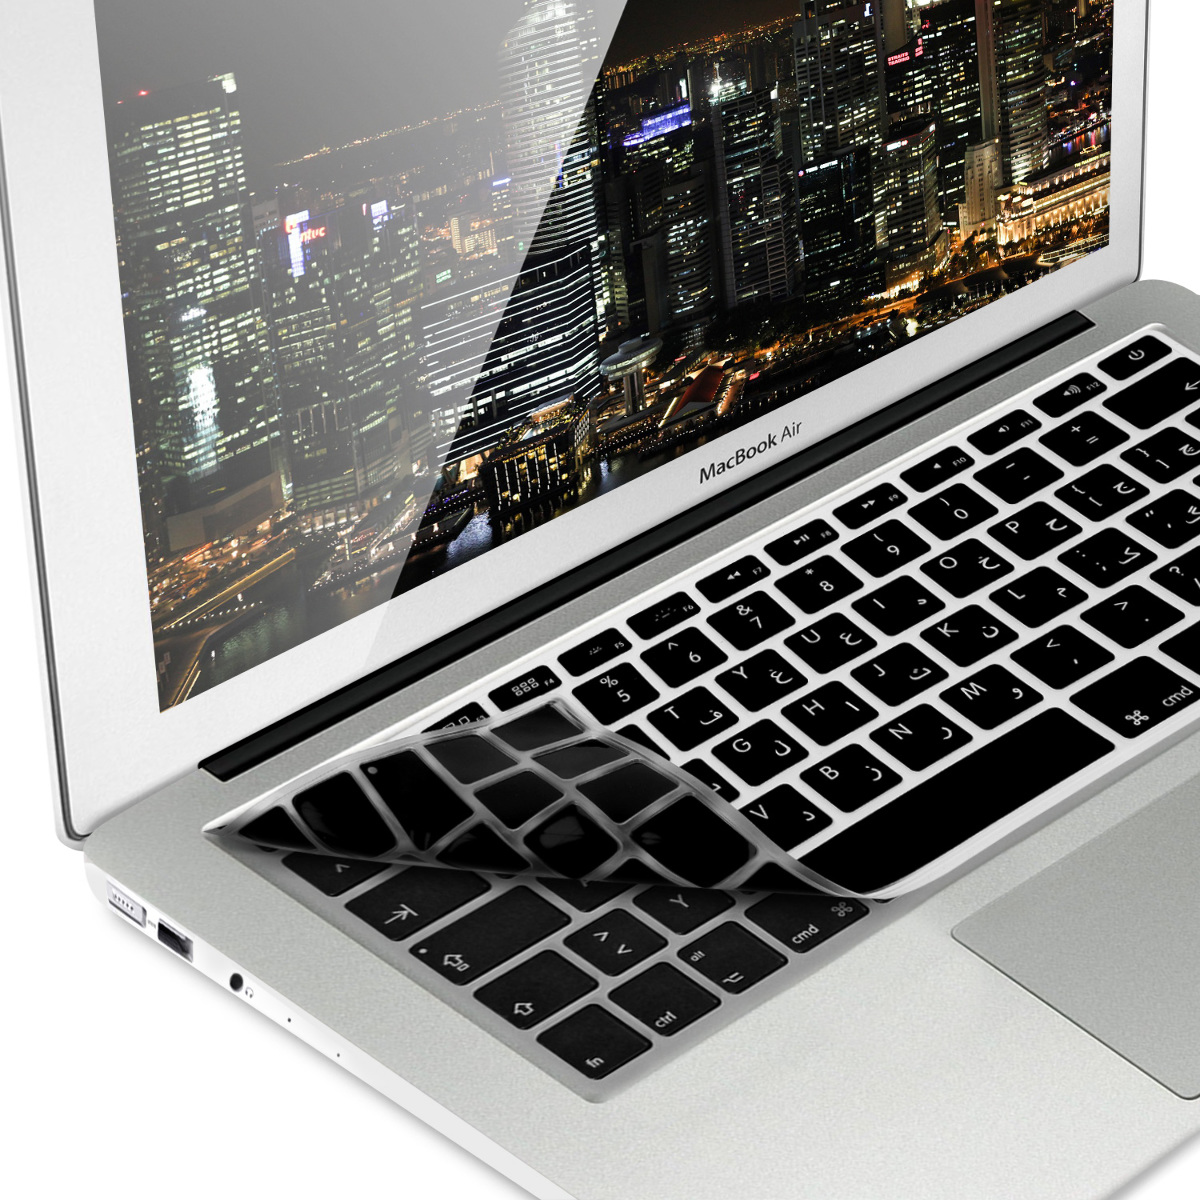 Macbook Air 13 Pro Retina Details About Keyboard Cover Qwerty Arabic For Apple Macbook Air 13 Pro Retina 13 15